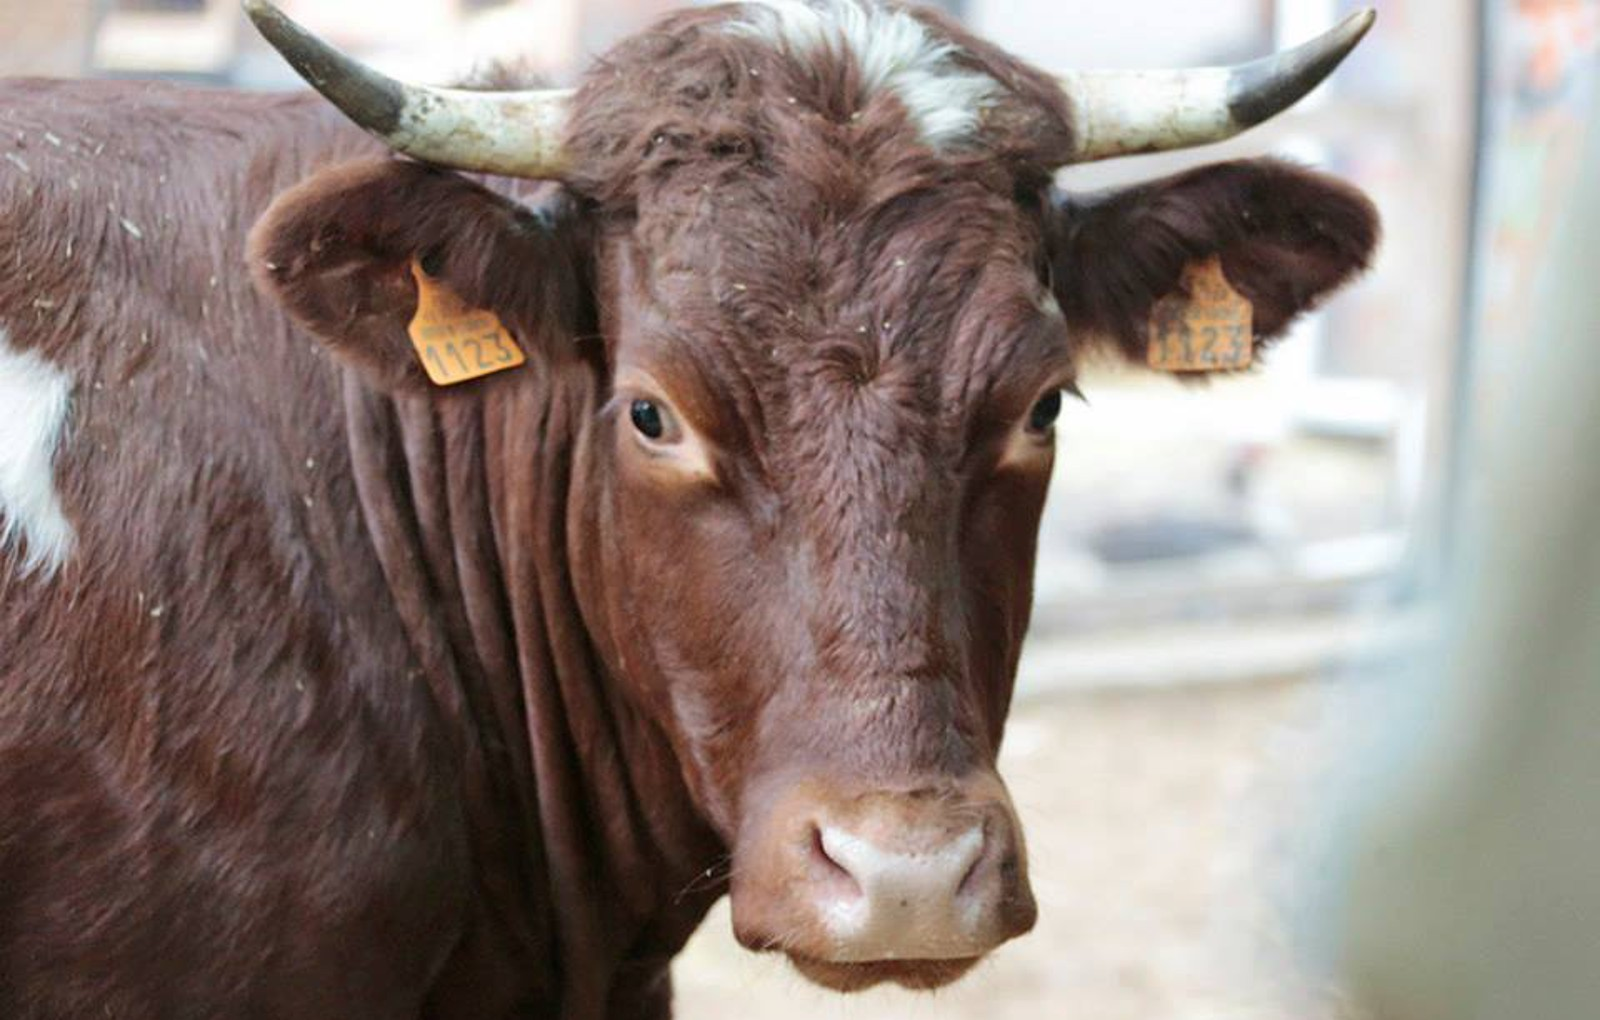 Cow Destined for Slaughterhouse in France Refused to Give Up